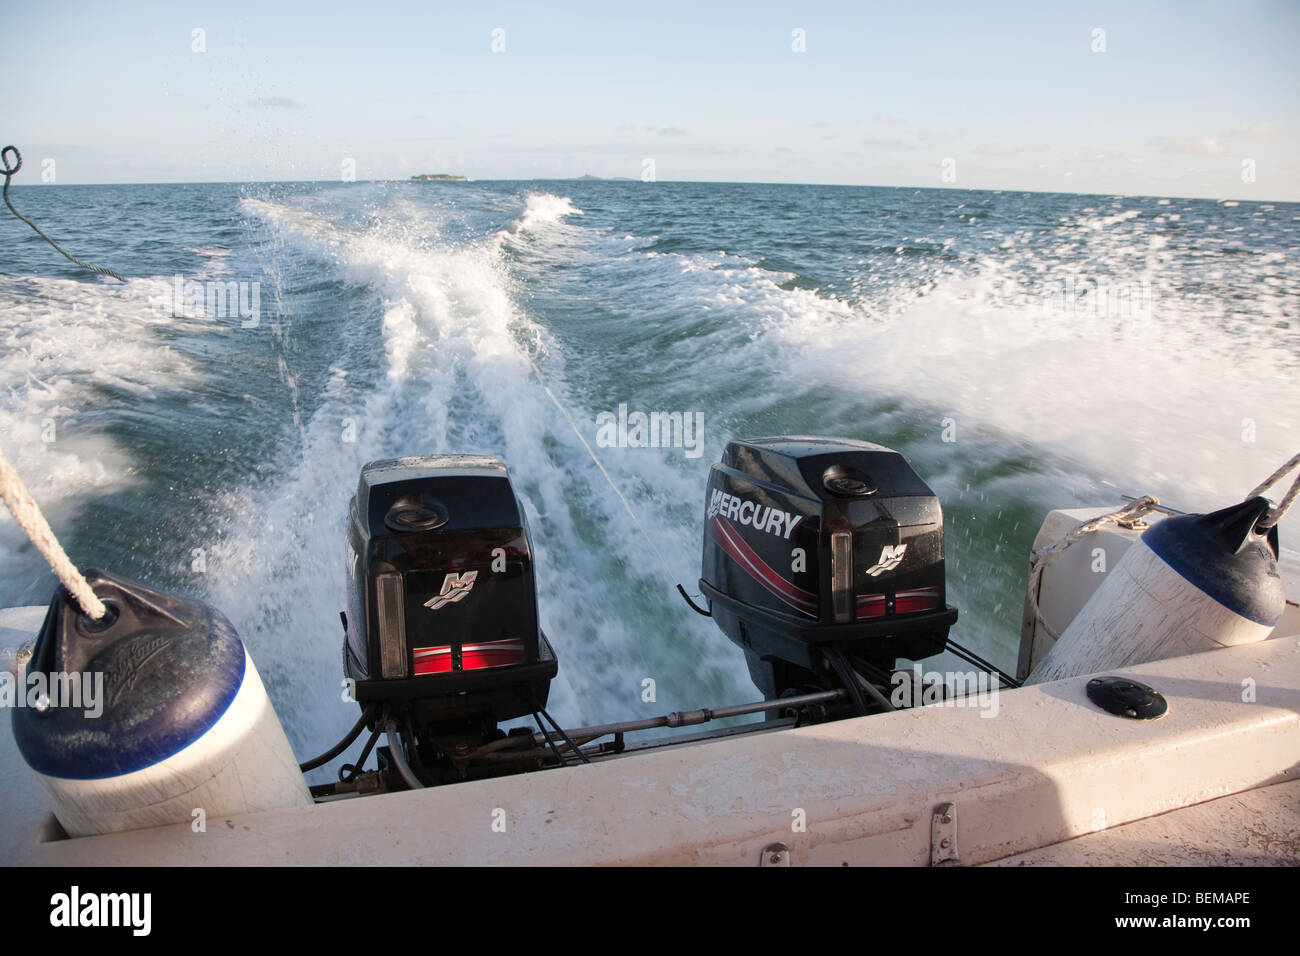 Boat with two outboard motors traveling at speed in Malaysia. - Stock Image